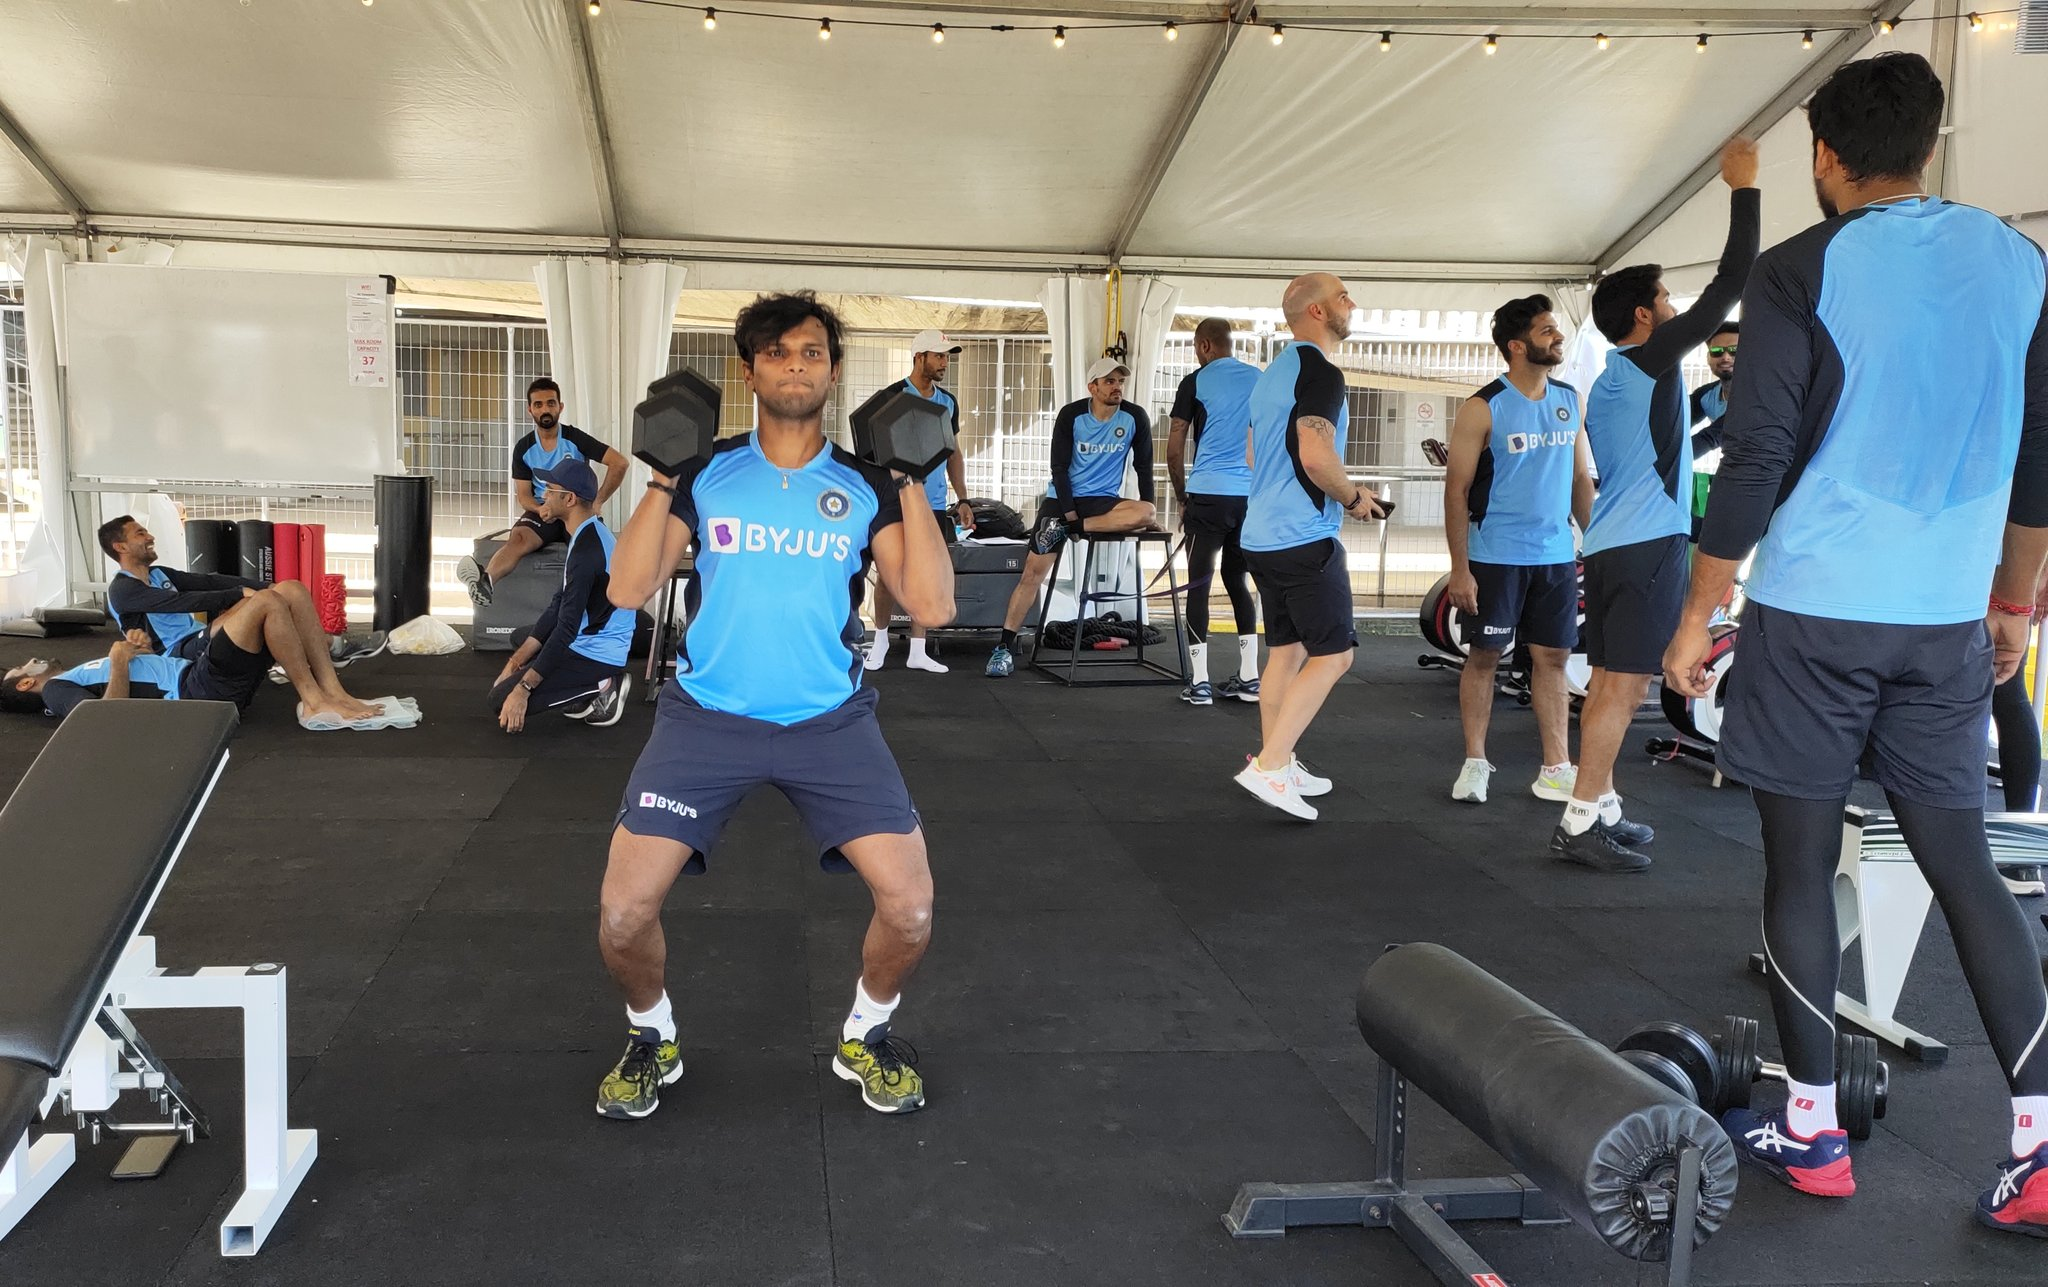 India vs Australia 2020, In Pics, Team India Sweats it Out in Practice Session